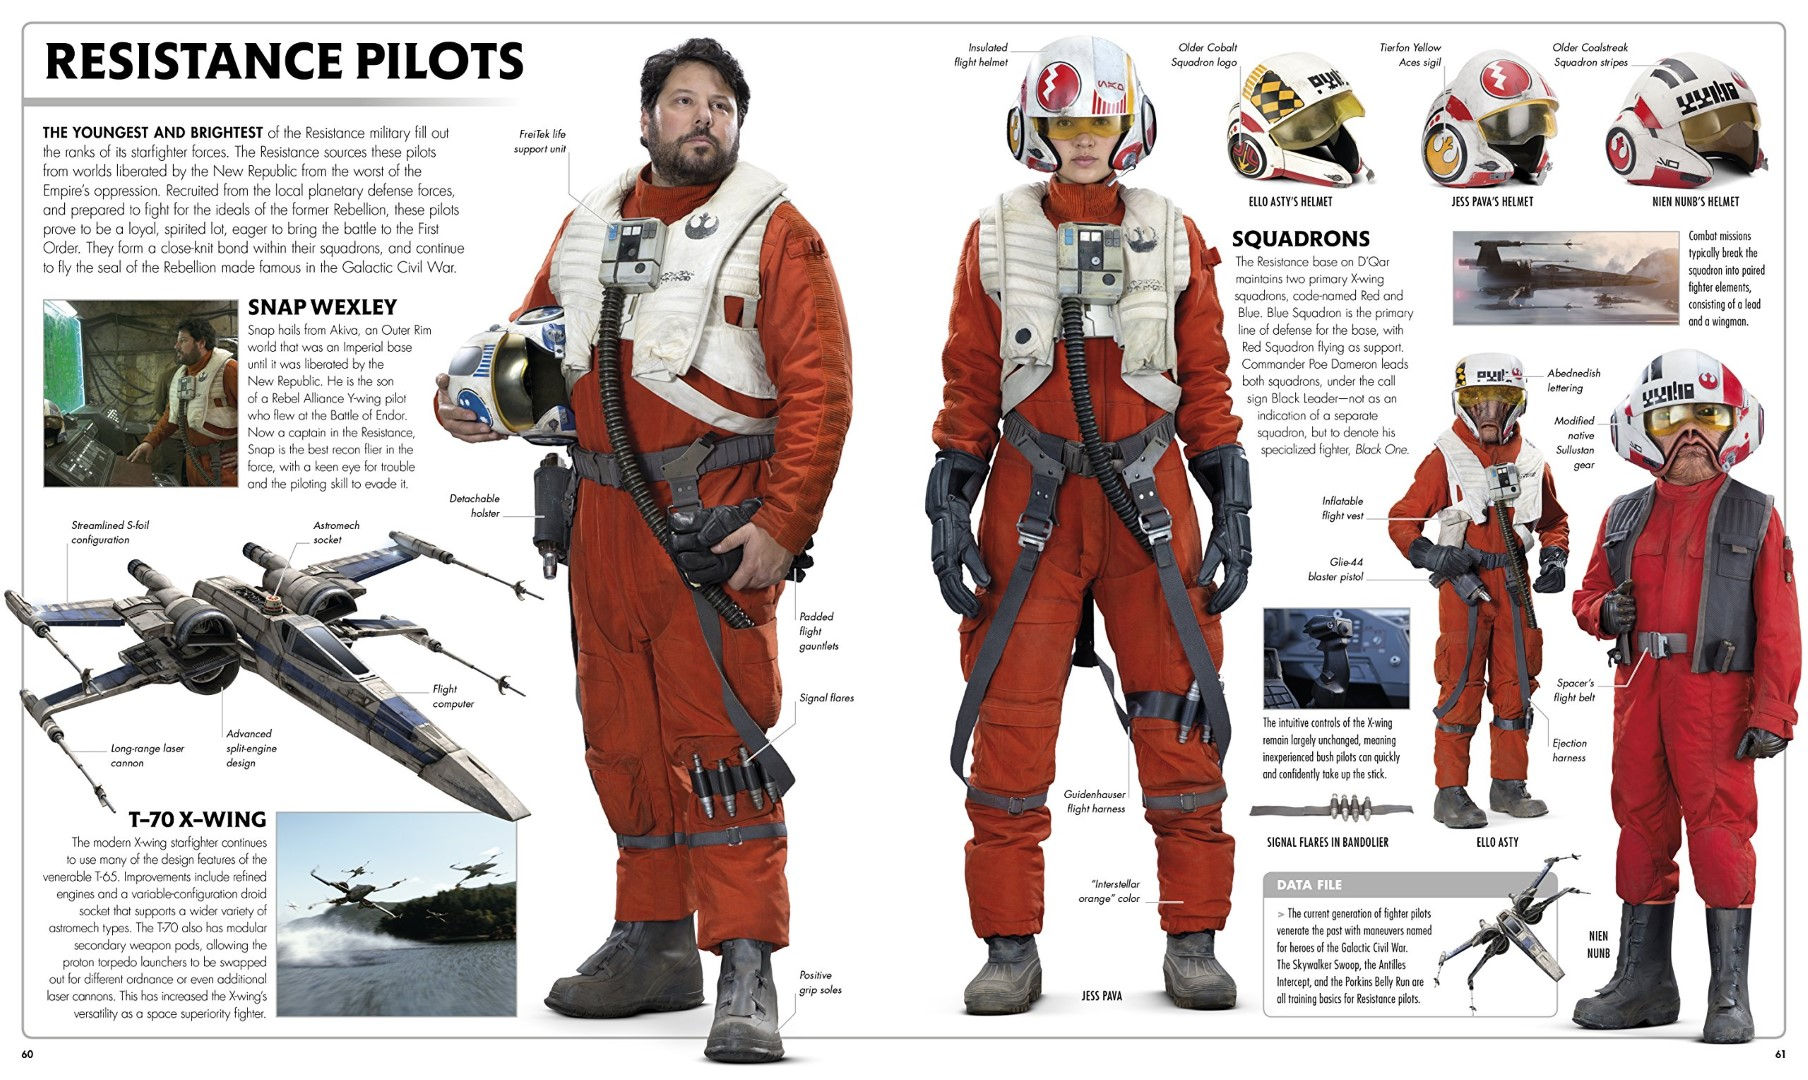 Star-Wars-Visual-Resistance-Pilots (Large)